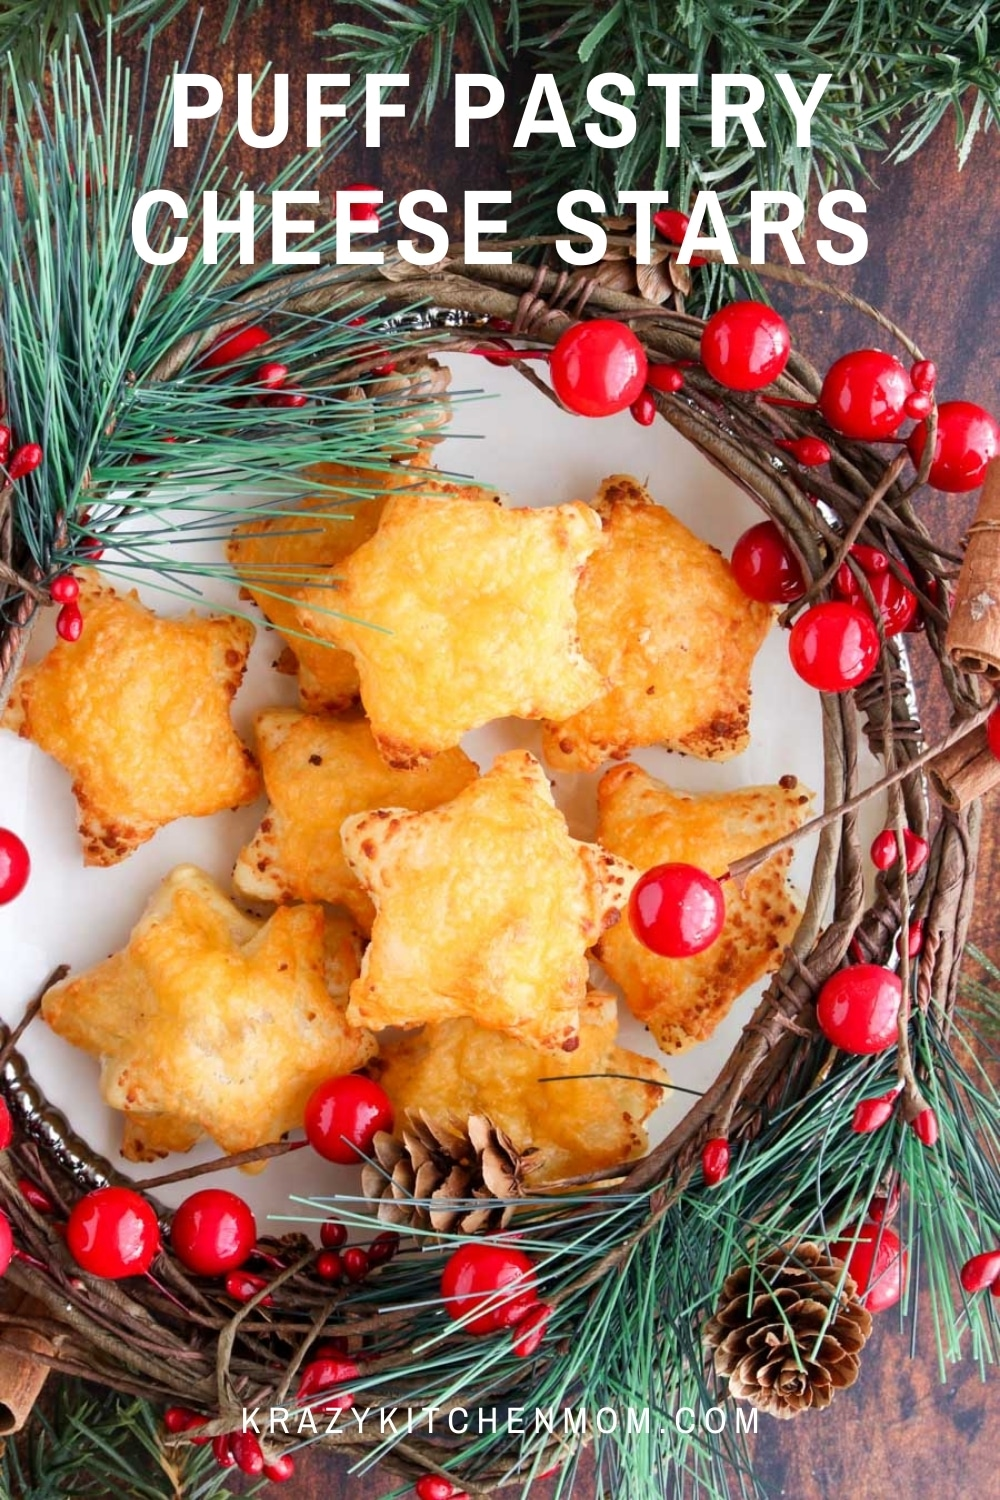 Puff Pastry Cheese Stars are an easy snack that anyone can make. They are buttery and flakey and topped with just the right amount of baked cheese.  via @krazykitchenmom